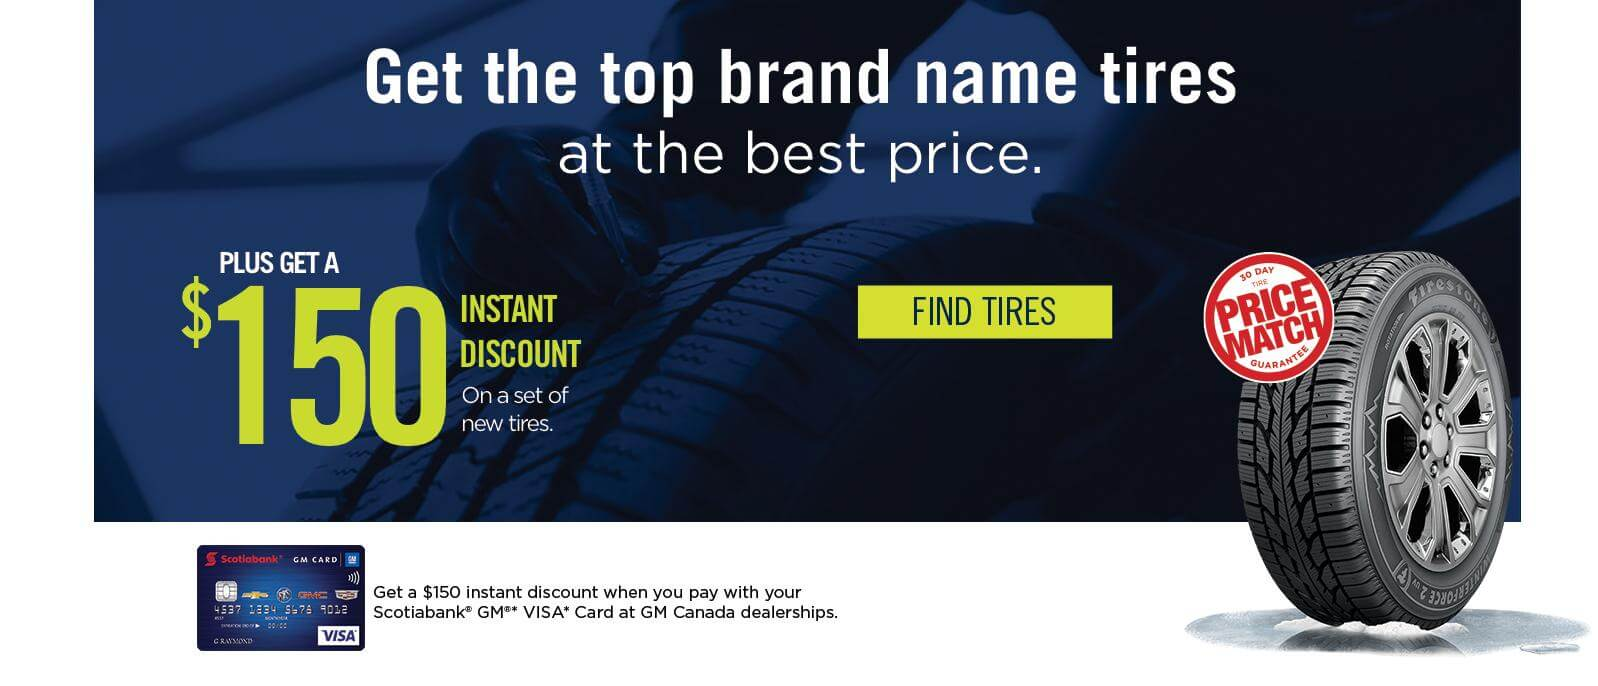 Get the top brand name tires at the best price